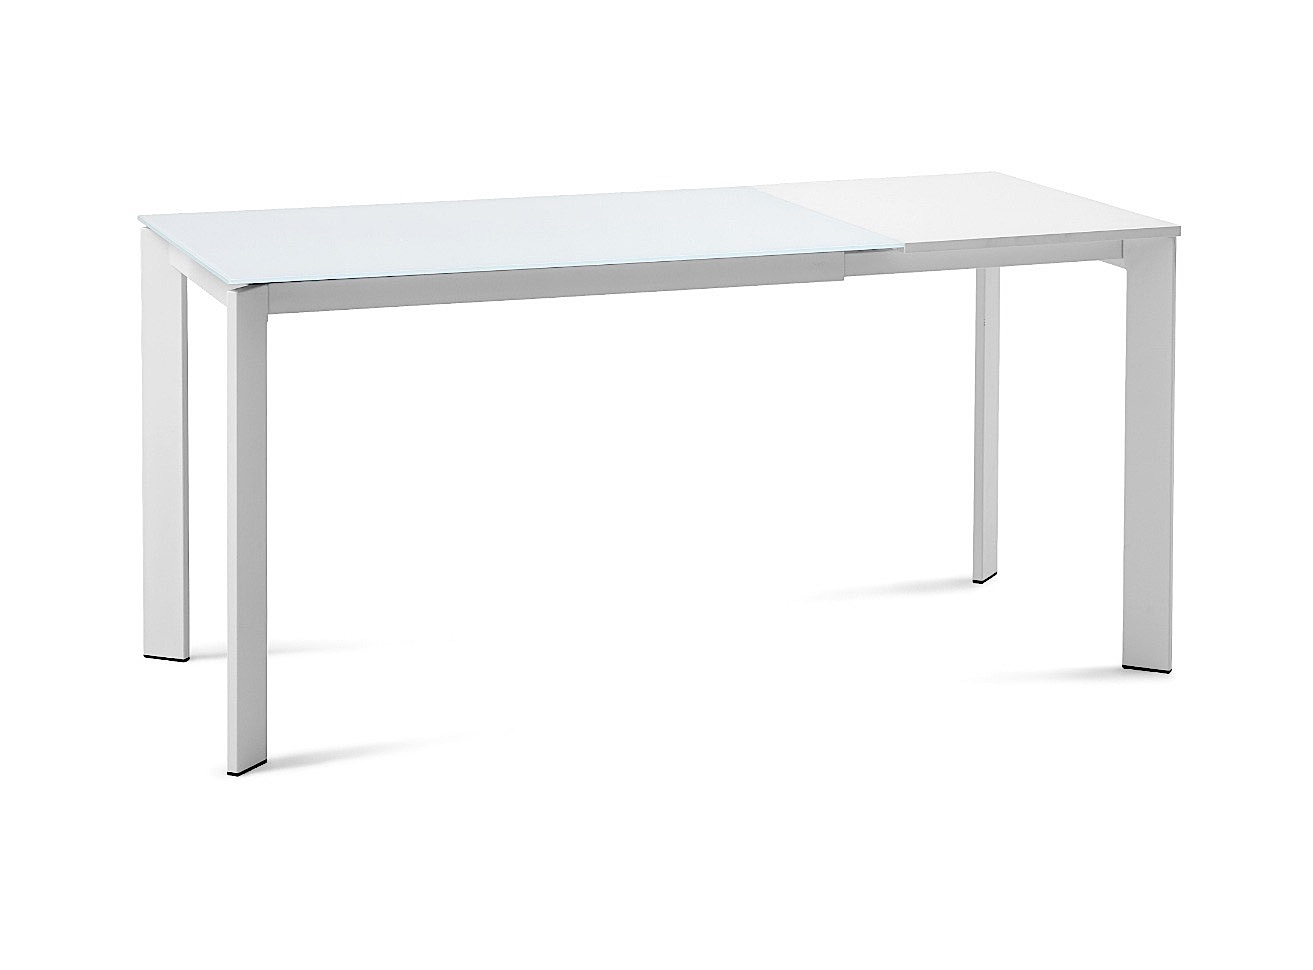 Maximo-110 Dining Table-31434